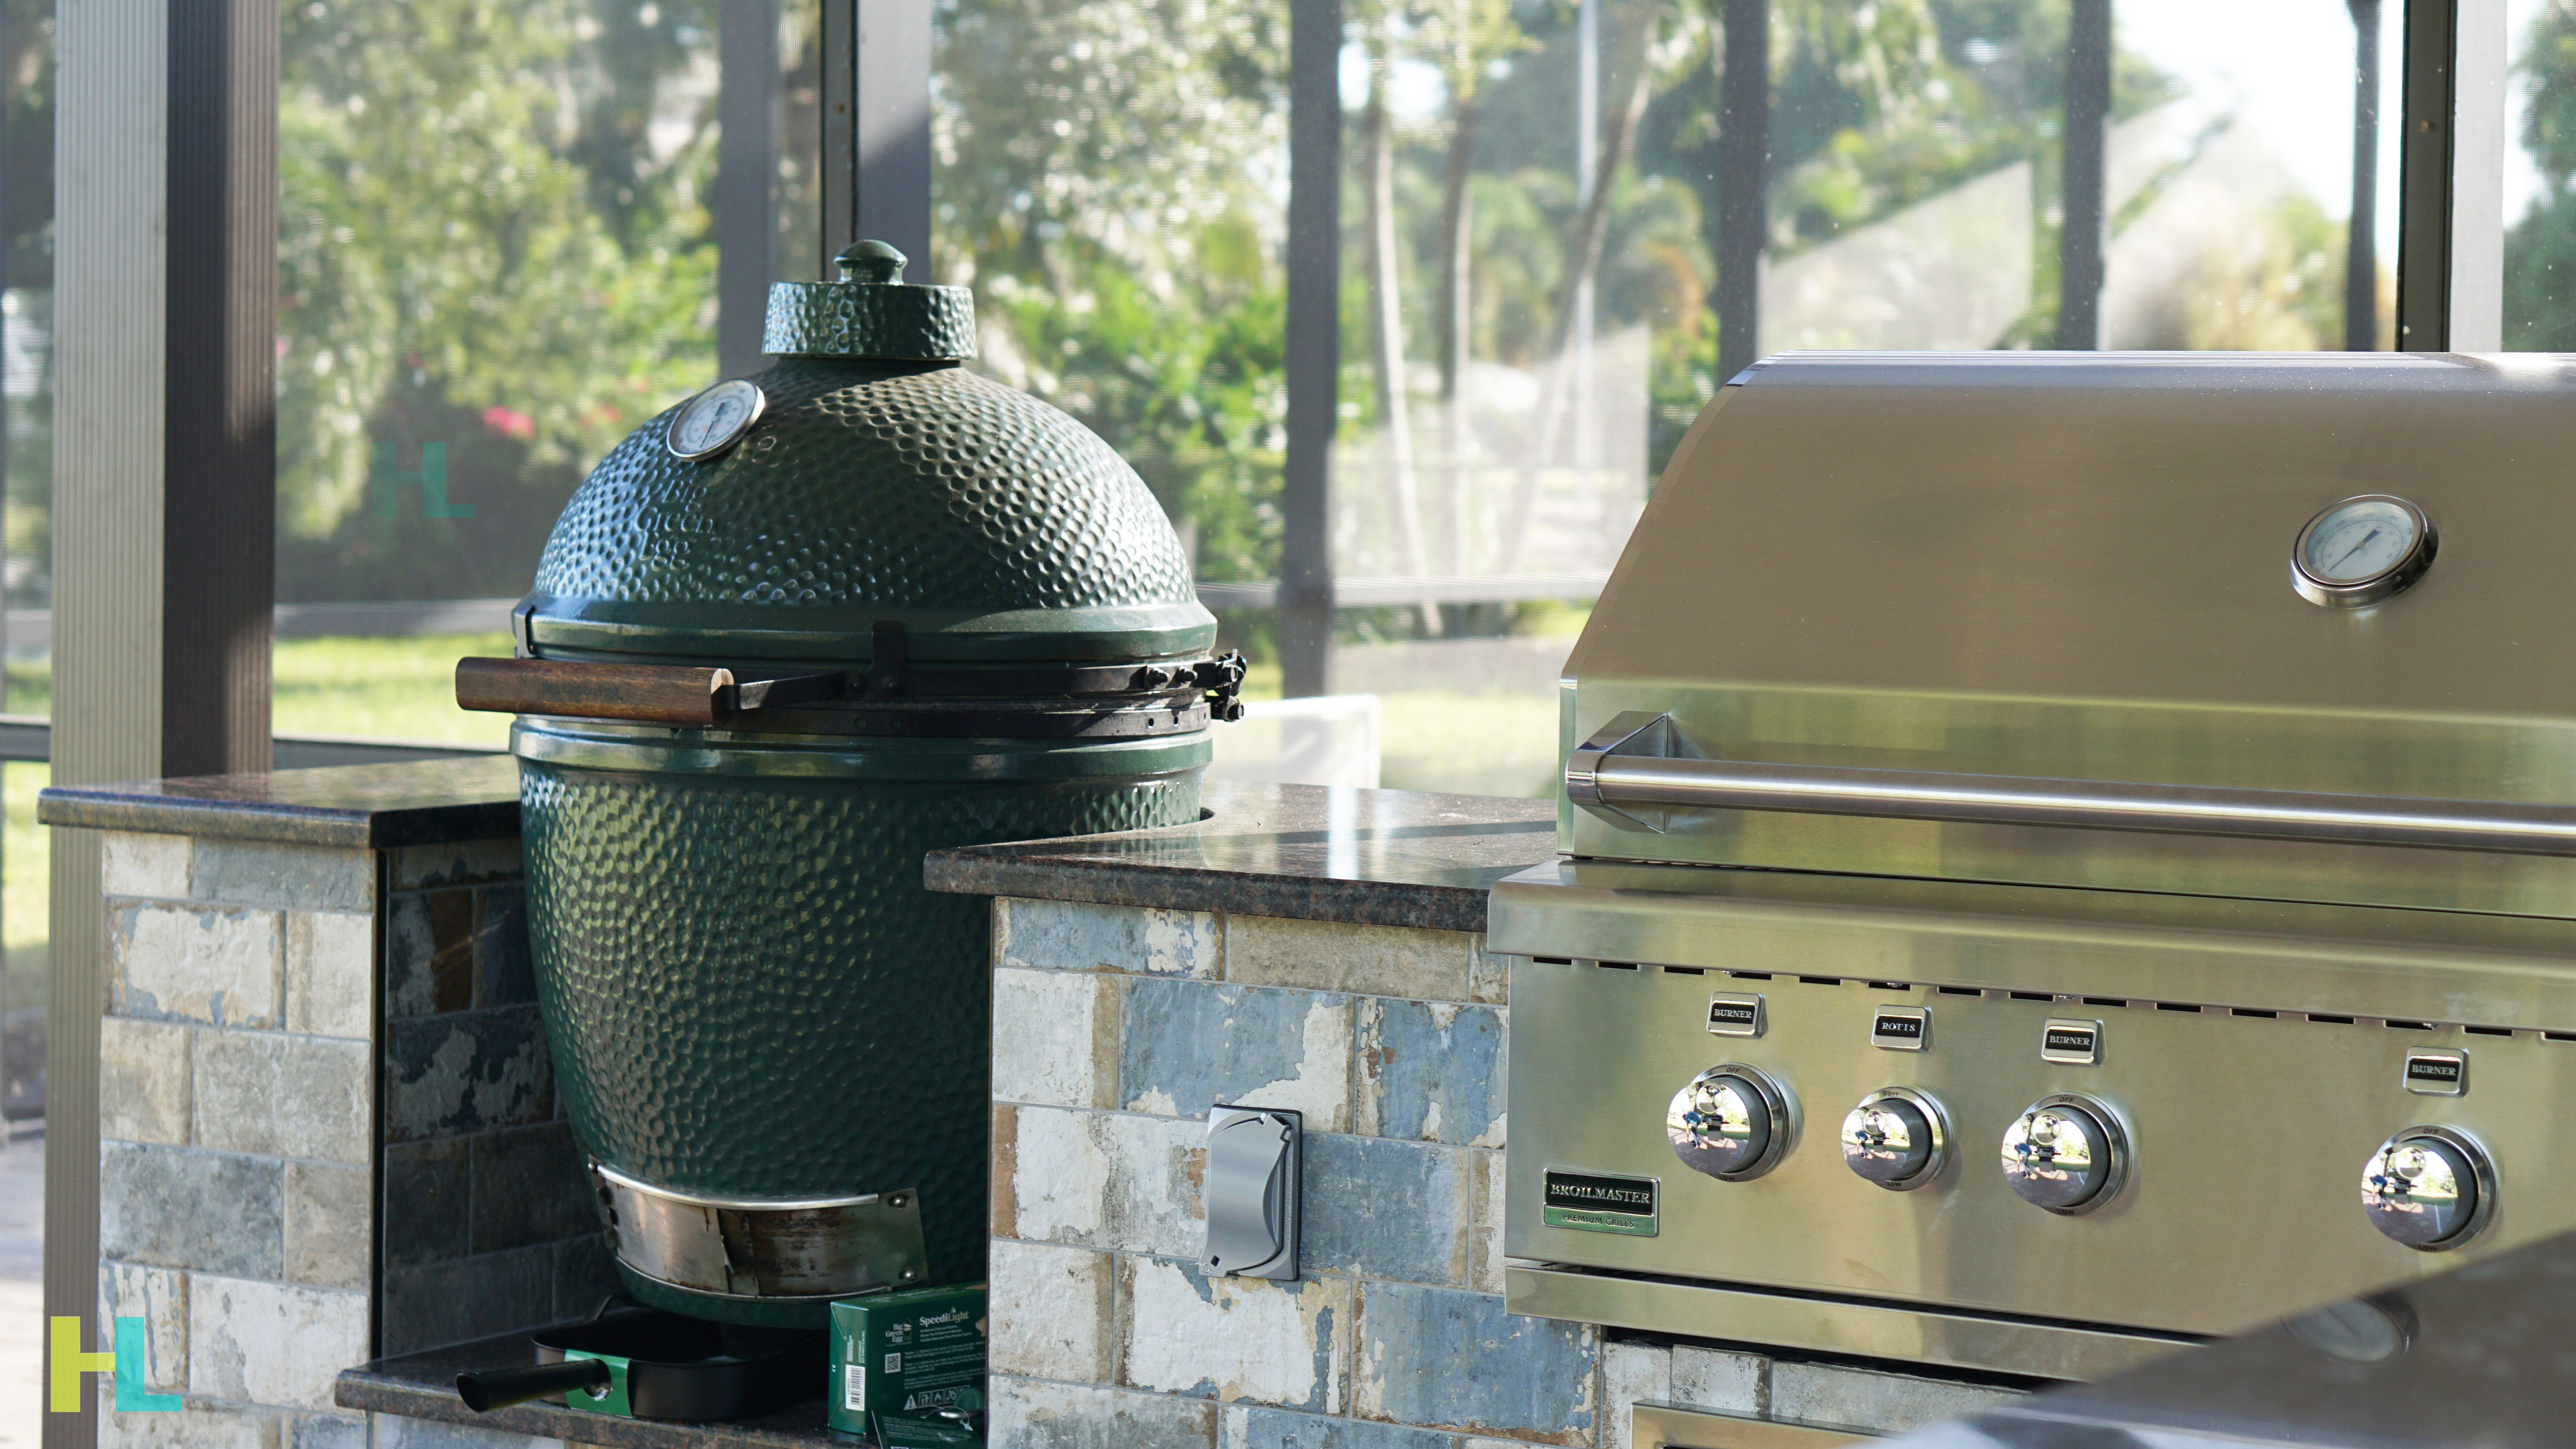 Add A Big Green Egg Broilmaster Grill All In One Get The Most Out Of Your Outdoor Living Space Bigg Big Green Egg Grill Green Egg Grill Outdoor Remodel